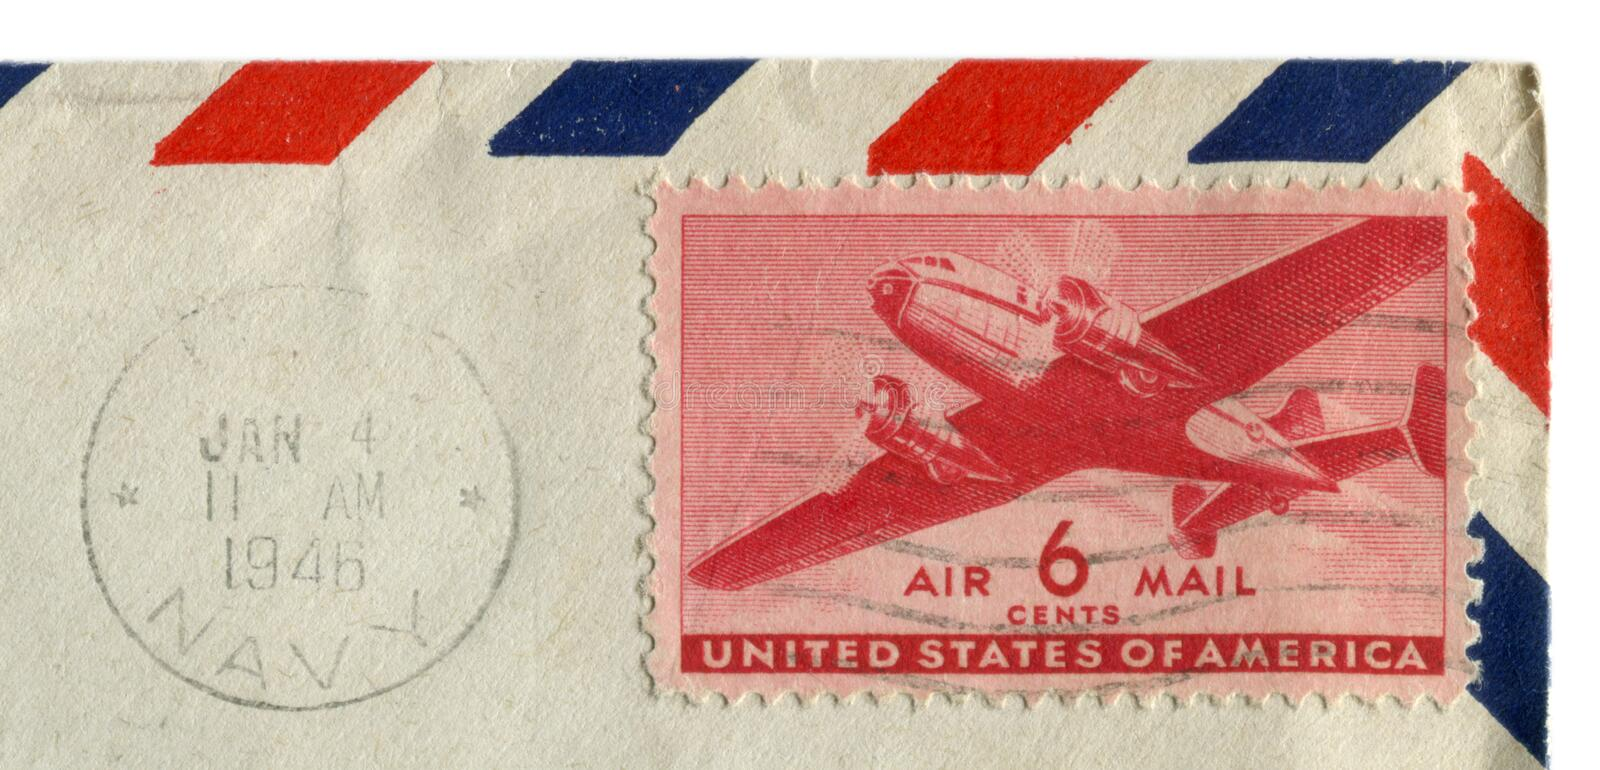 The United states of america - 4 Jan 1946: American historical stamp: six cents airmail with transport and passenger aircraft, bla. Ck ink postal cancellation royalty free stock photo